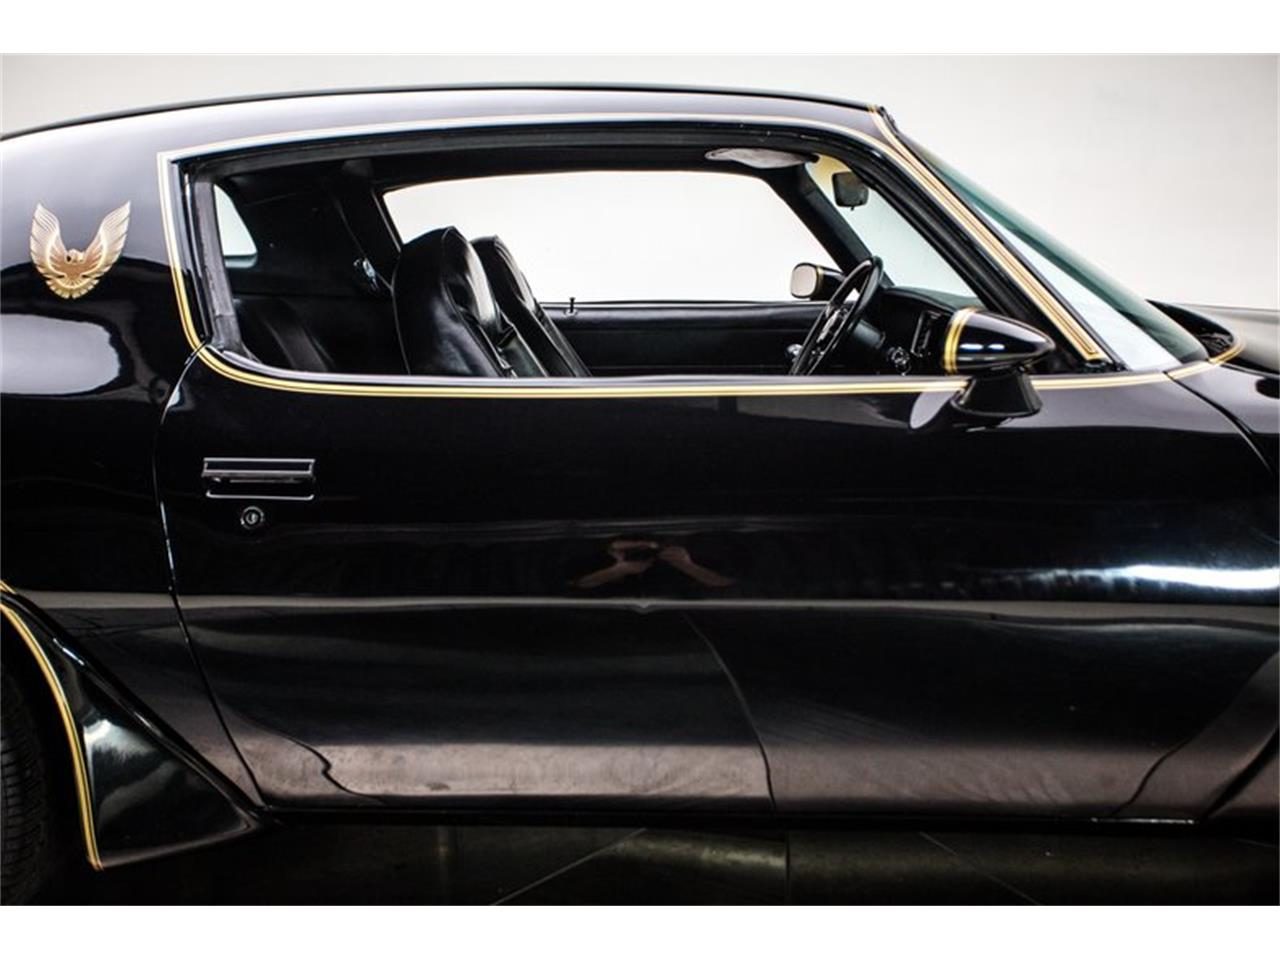 Large Picture of 1981 Firebird Trans Am located in Cedar Rapids Iowa Offered by Duffy's Classic Cars - OV9G